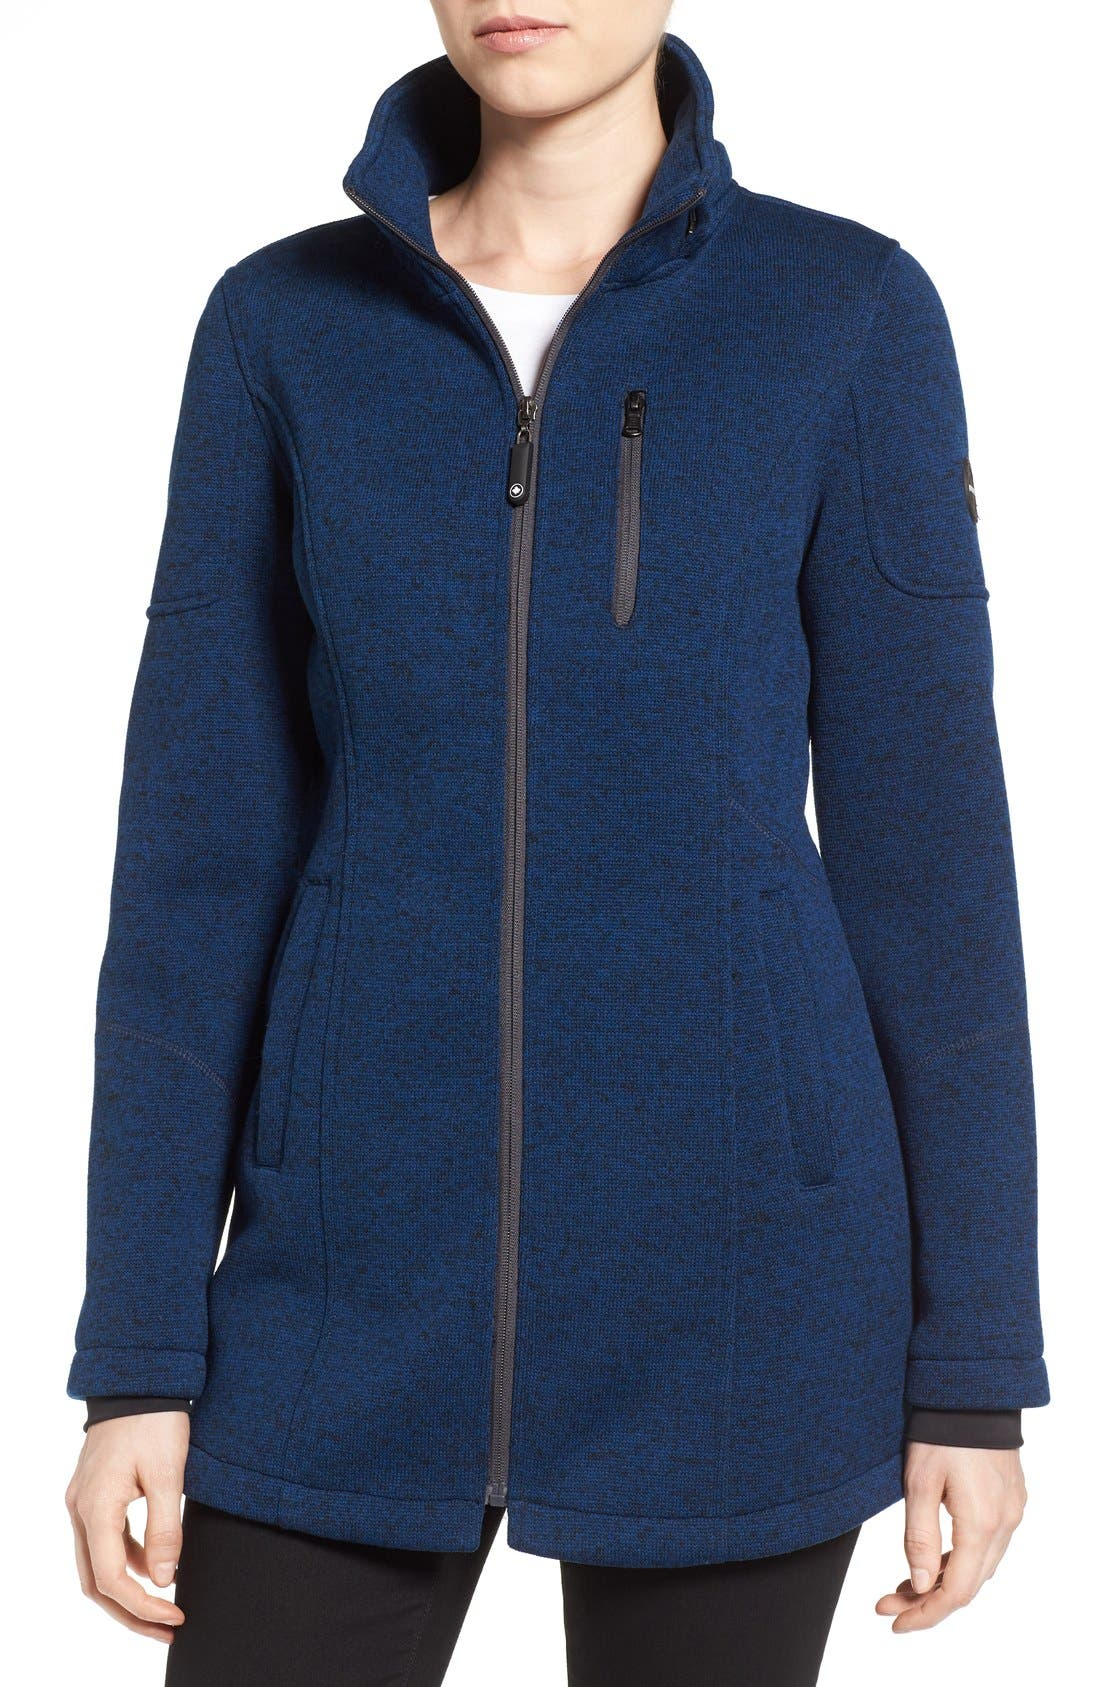 Bonded Knit Zip Front Jacket,                             Alternate thumbnail 8, color,